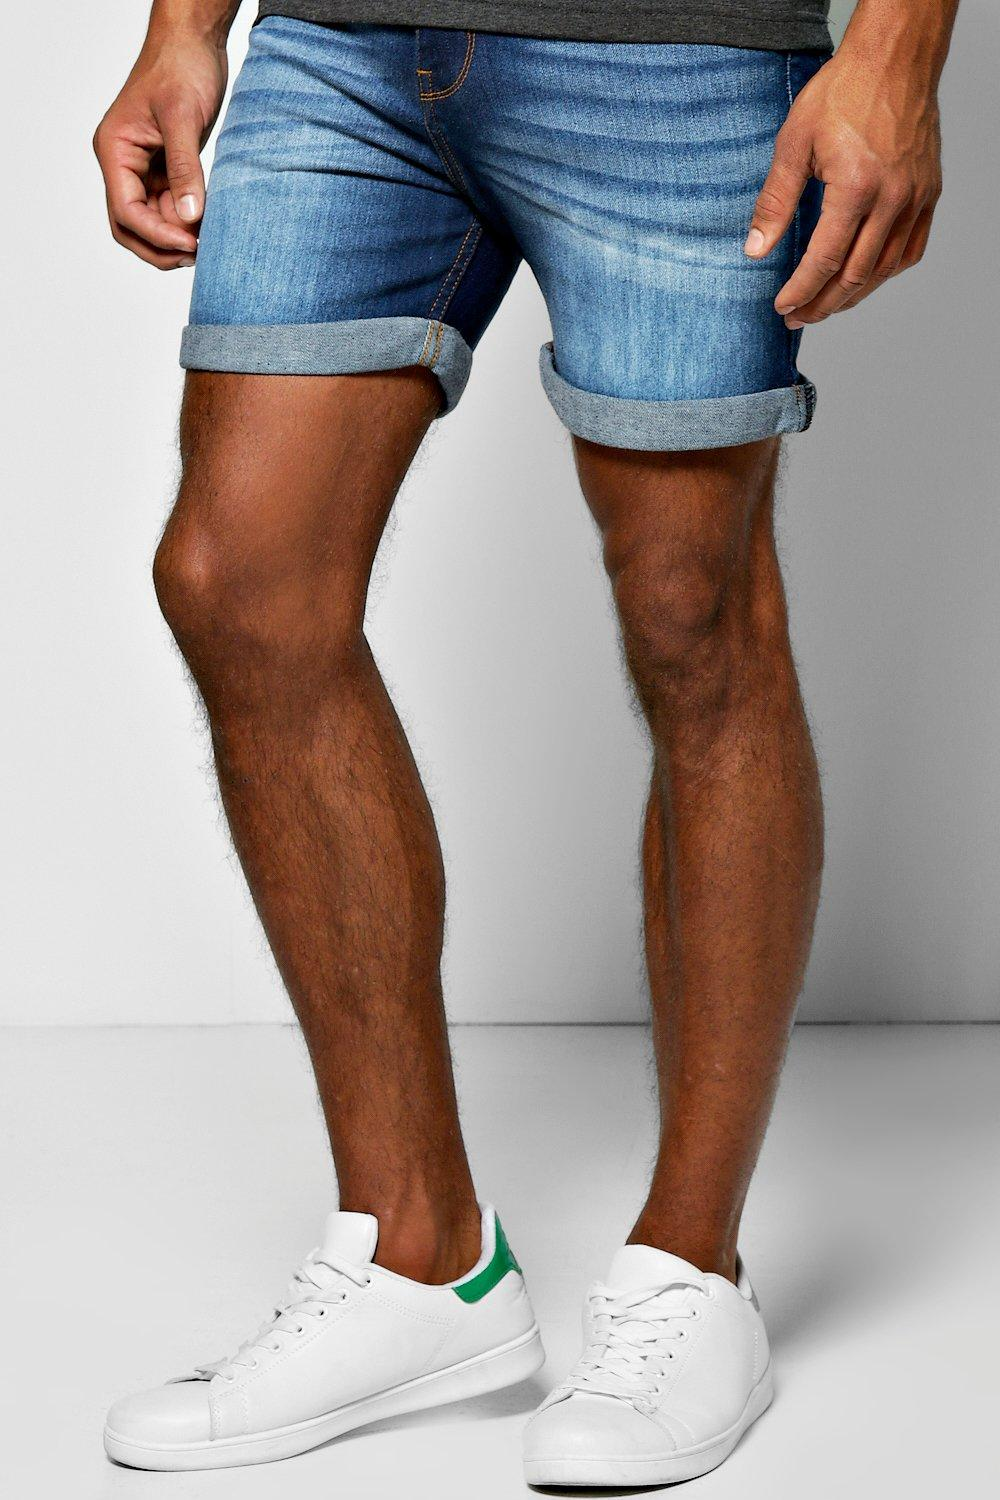 12 short skinny denim shorts for men MKPBISN